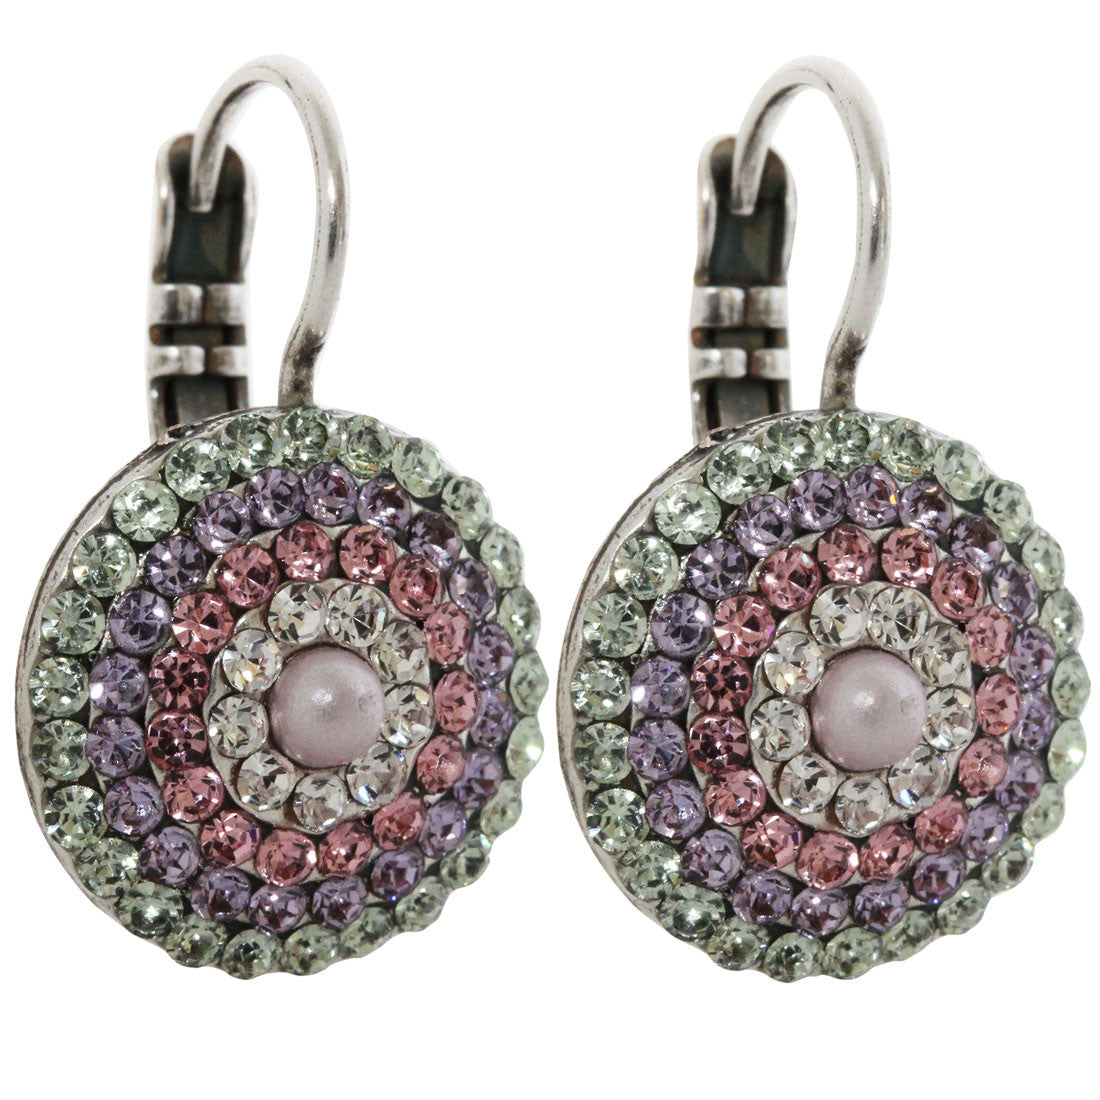 Mariana Silver Plated Statement Round Swarovski Crystal Earrings, Pina Colada 1193 1063